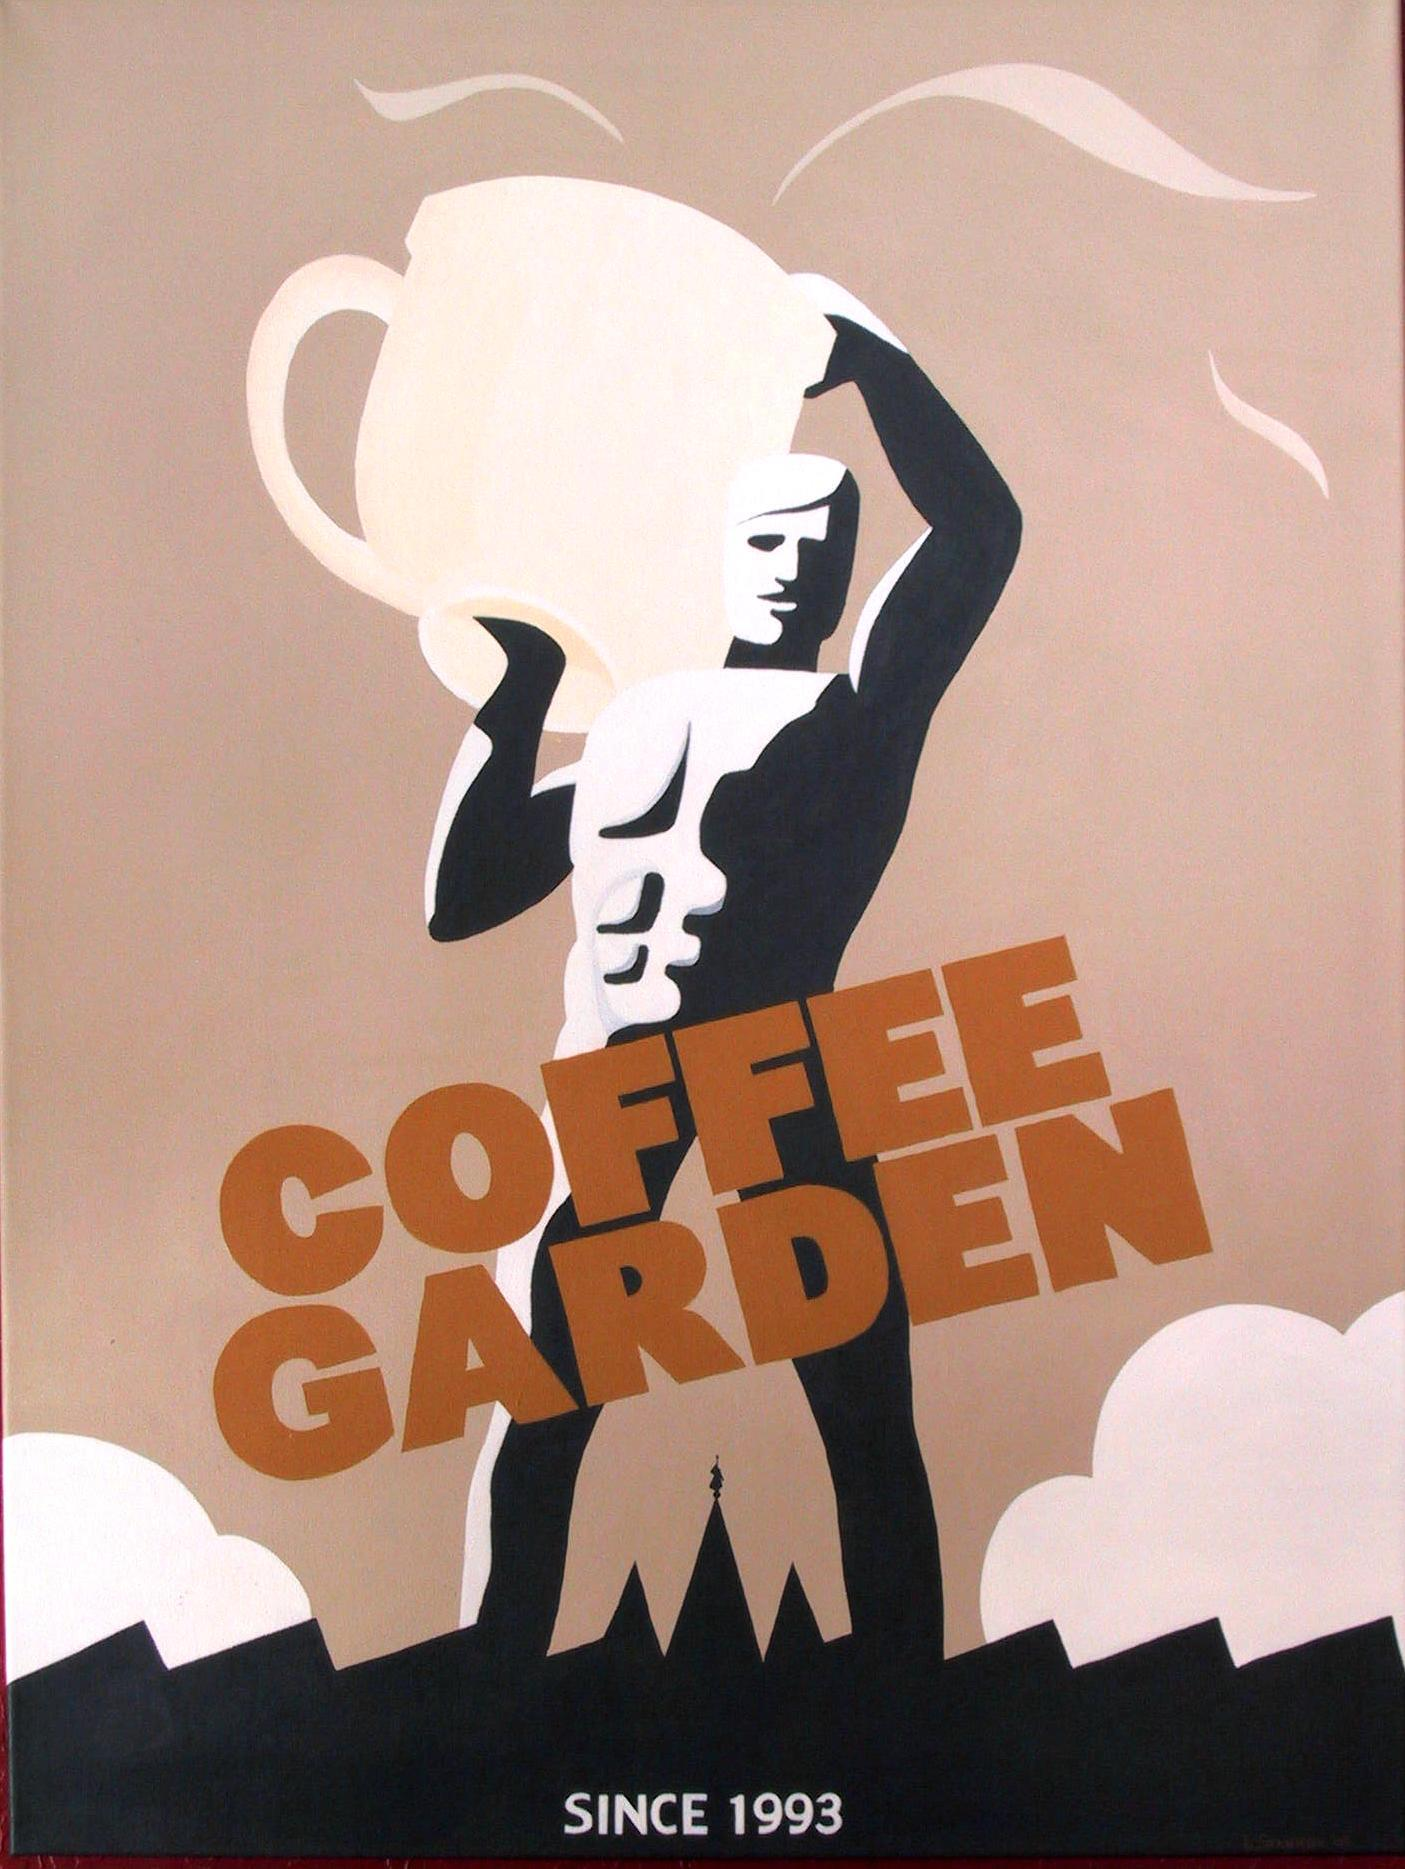 Coffee Garden - 878 E. 900 S., SLC